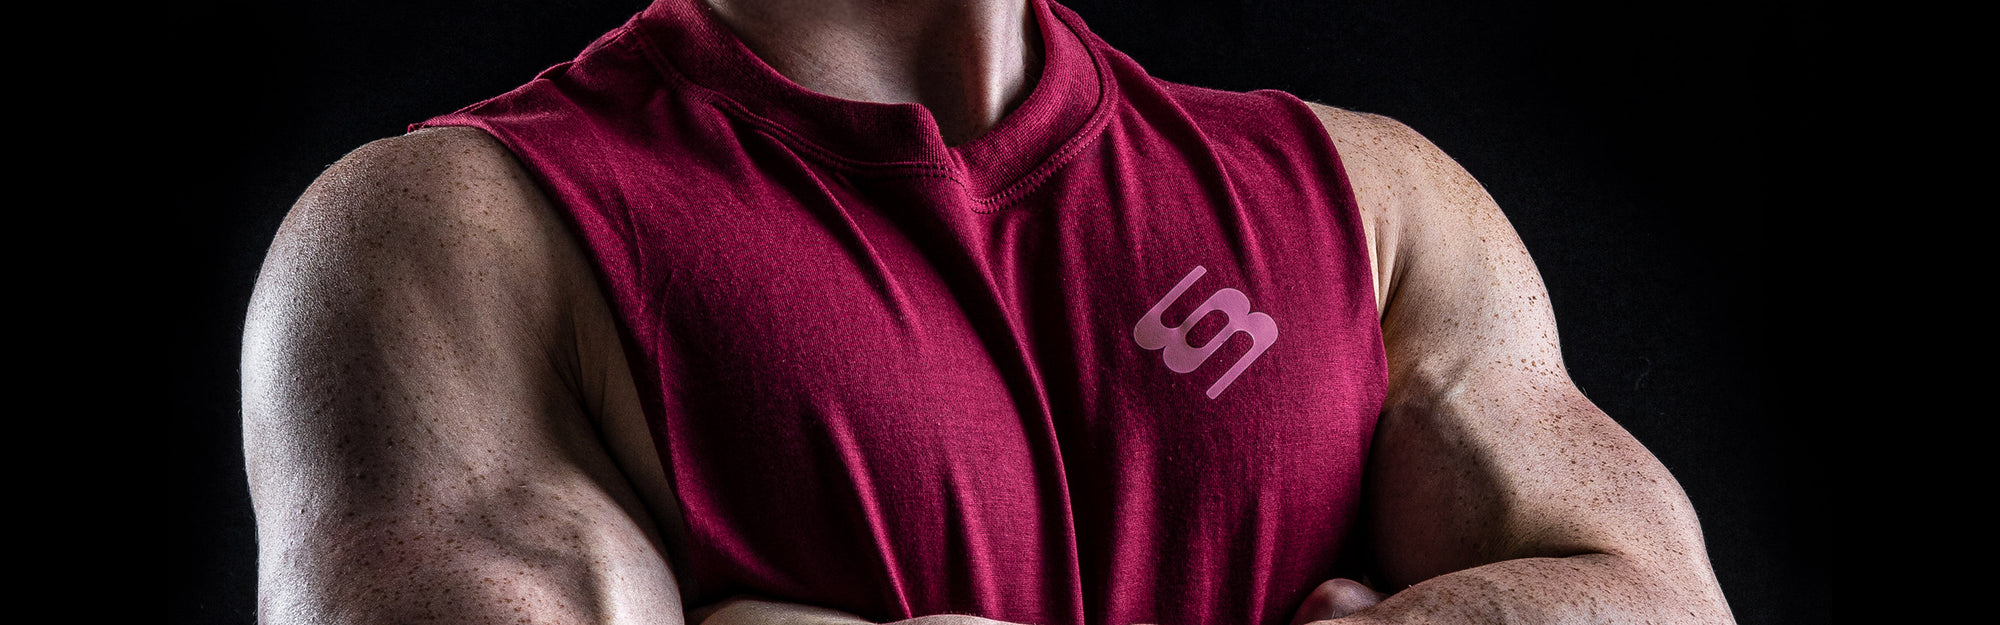 Our story - banner image of man wearing Bettyswollox cherry red tank